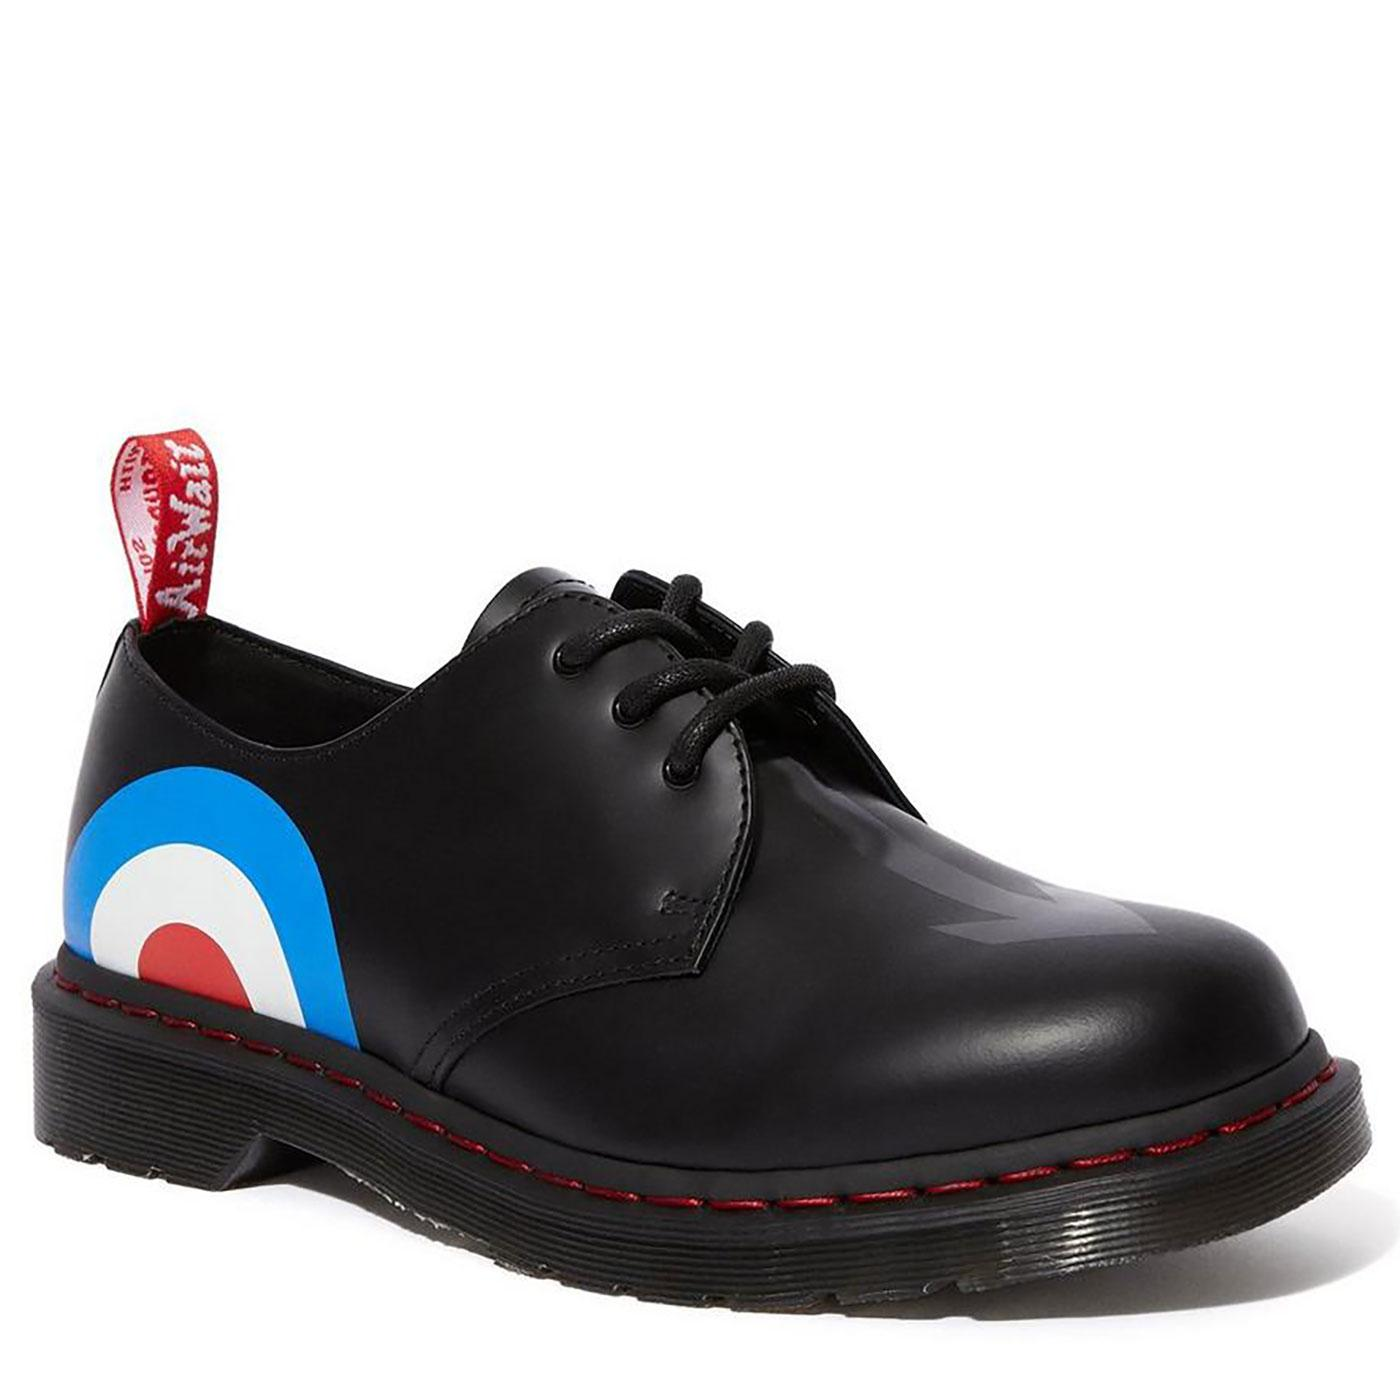 DR MARTENS X THE WHO 1461 Women's 60's Mod Shoes